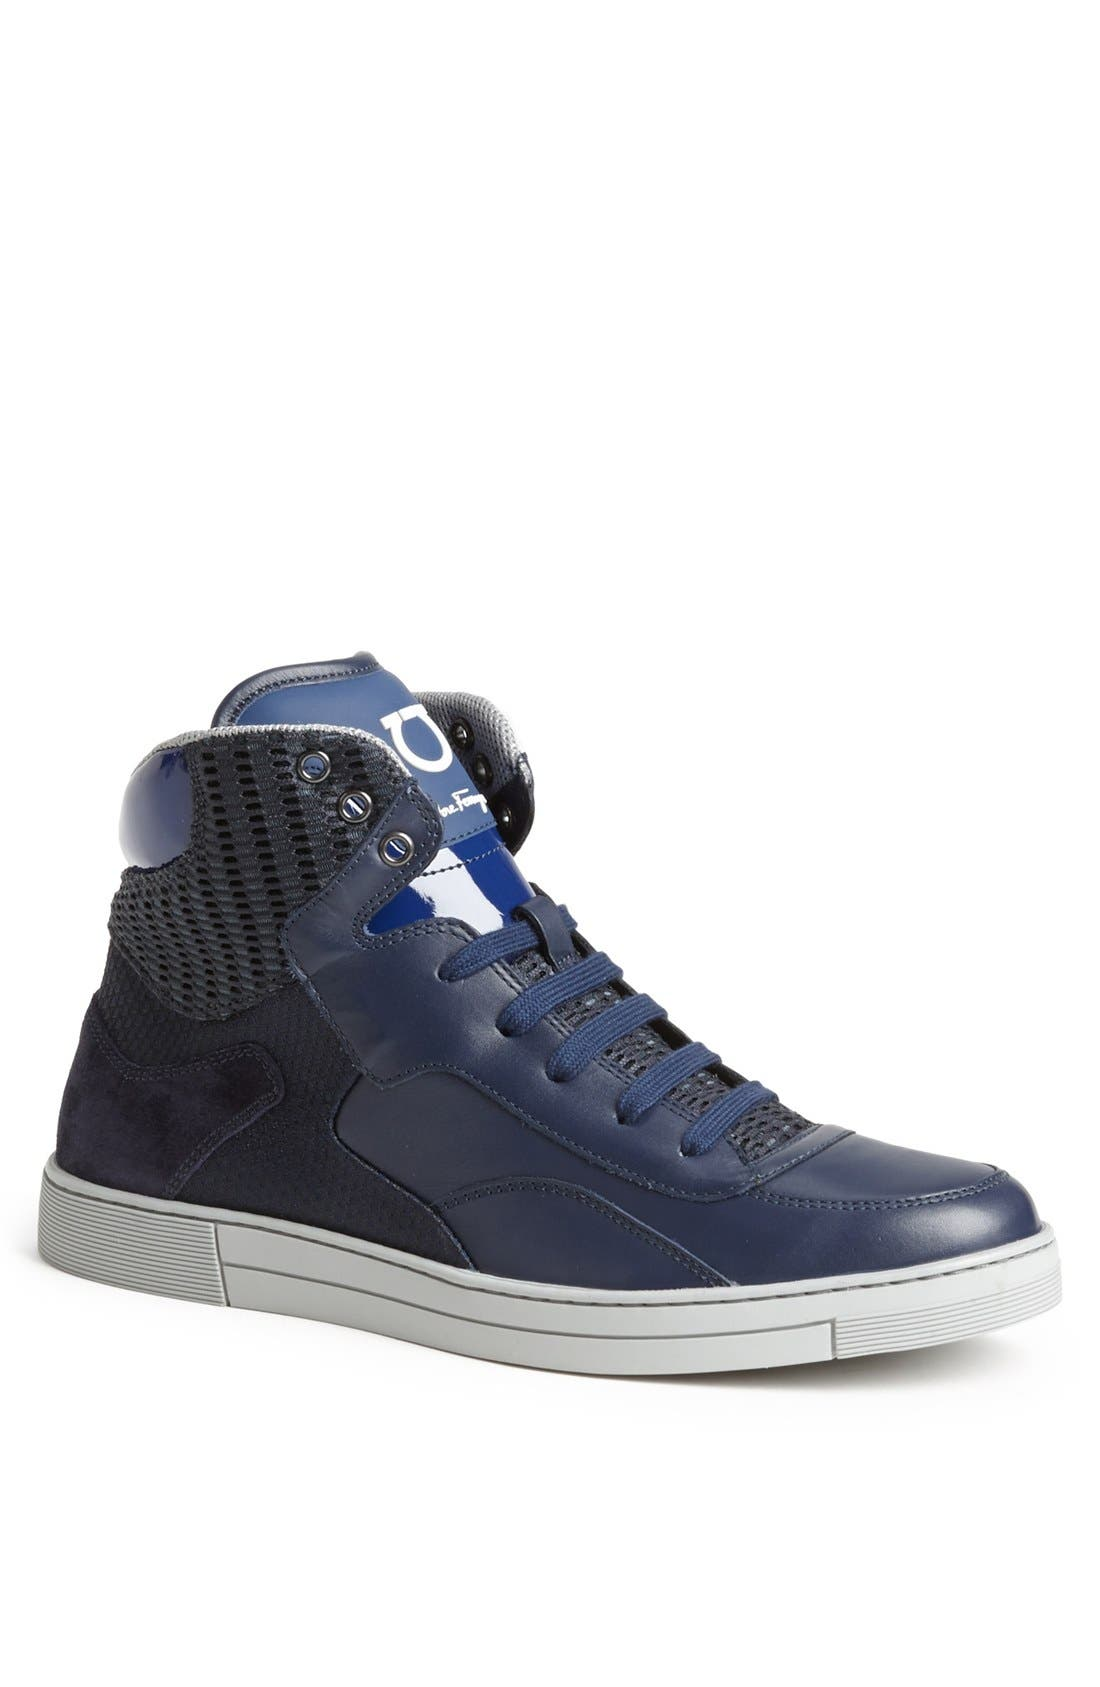 Main Image - Salvatore Ferragamo 'Robert' High Top Sneaker